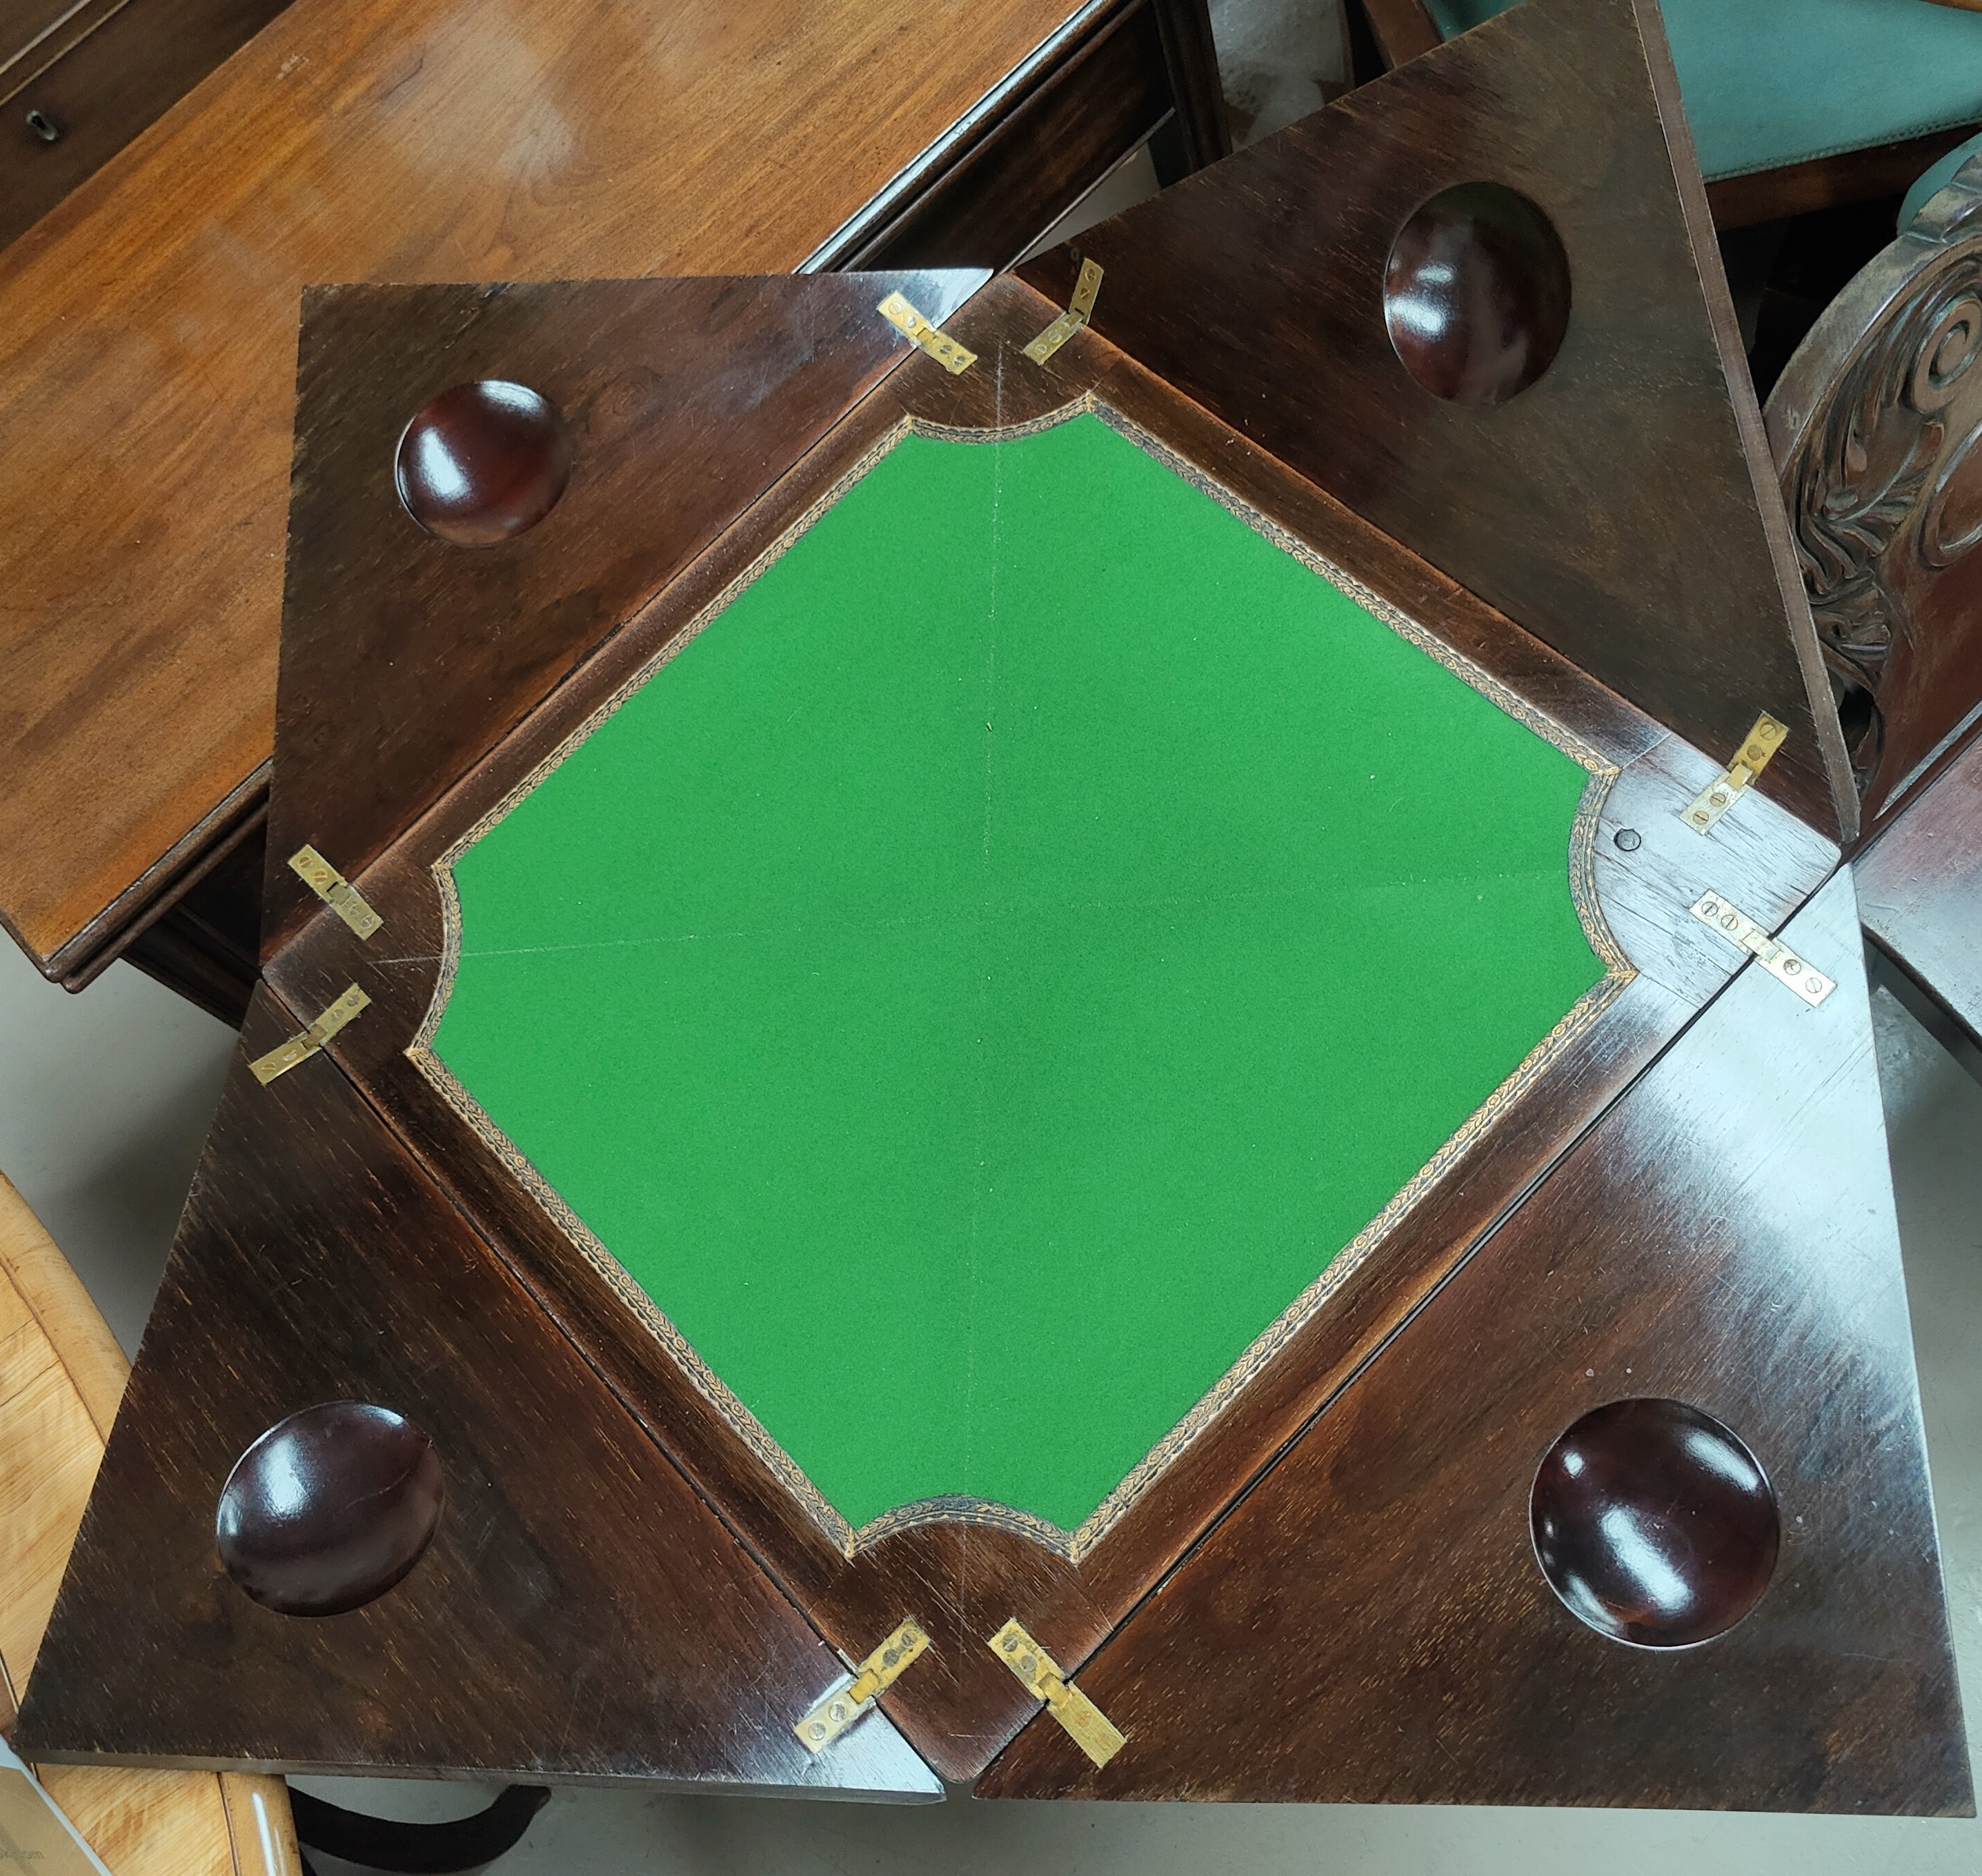 A Victorian Rosewood envelope card table with floral inlay to the top with satinwood inlay with - Image 2 of 2